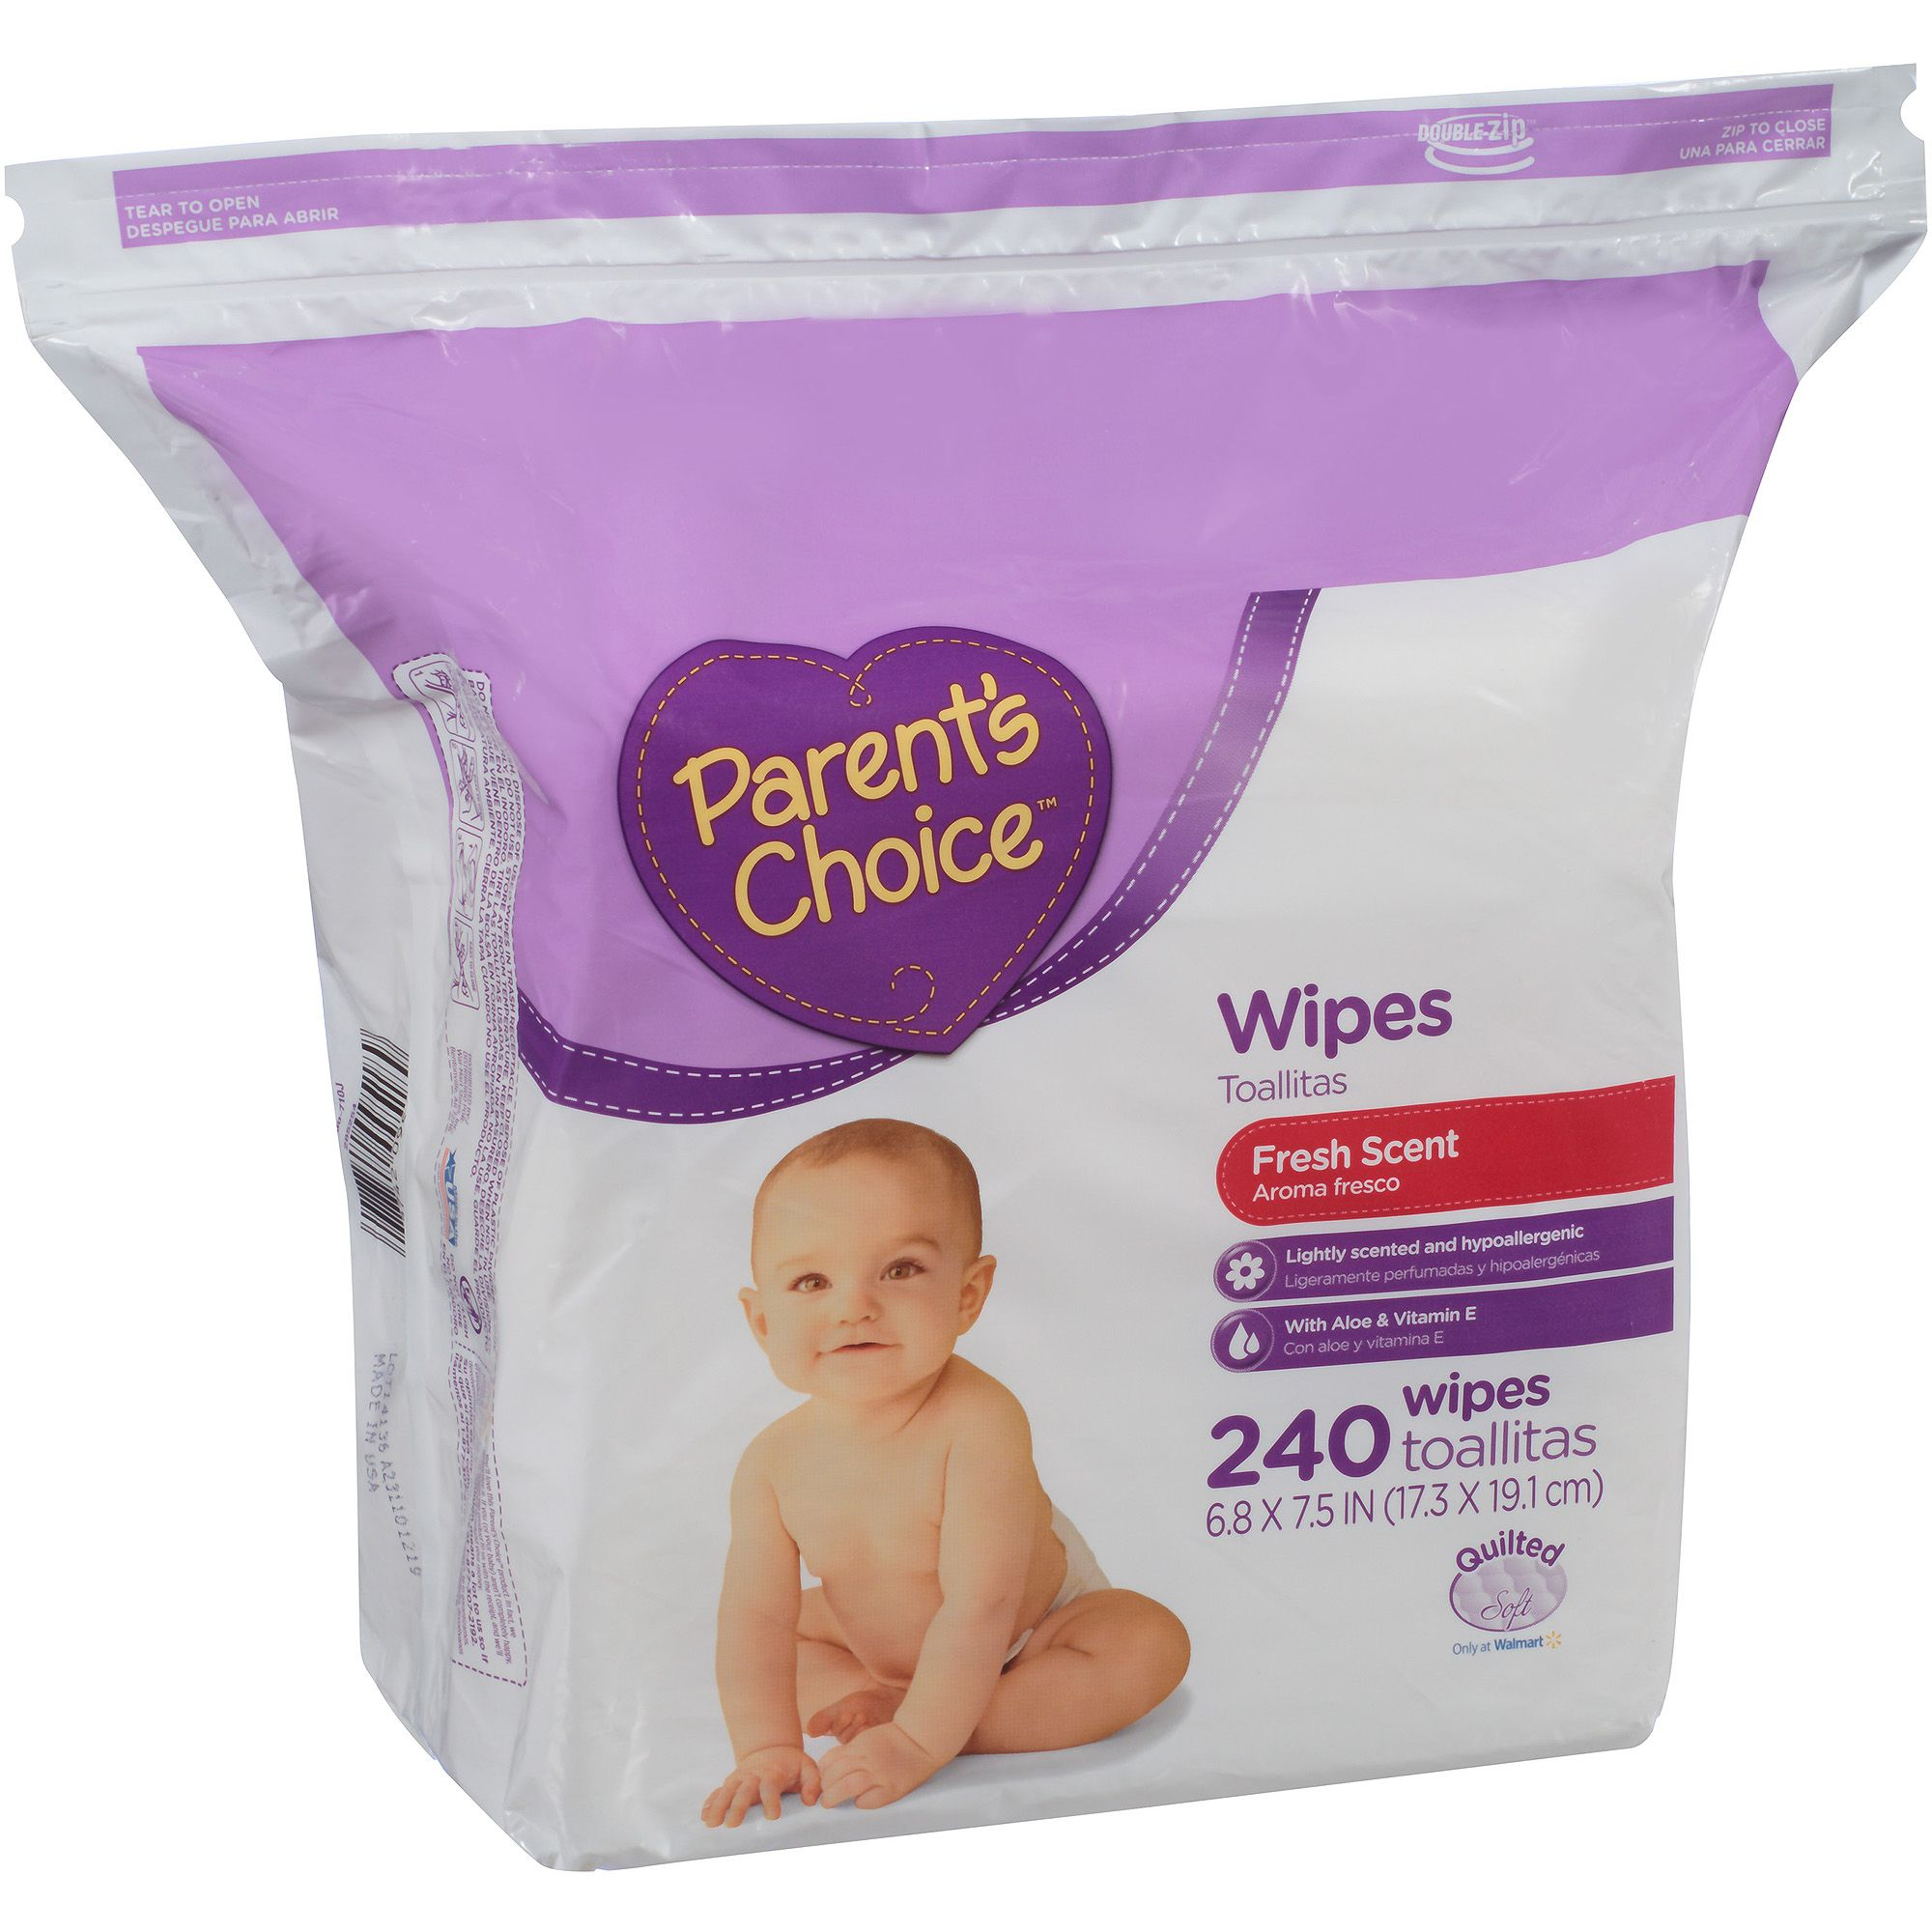 Diapering Water Wipes Natural Baby Nappy Wipes Senstive Skin Extra Baby Care Chemical Free Good Companions For Children As Well As Adults